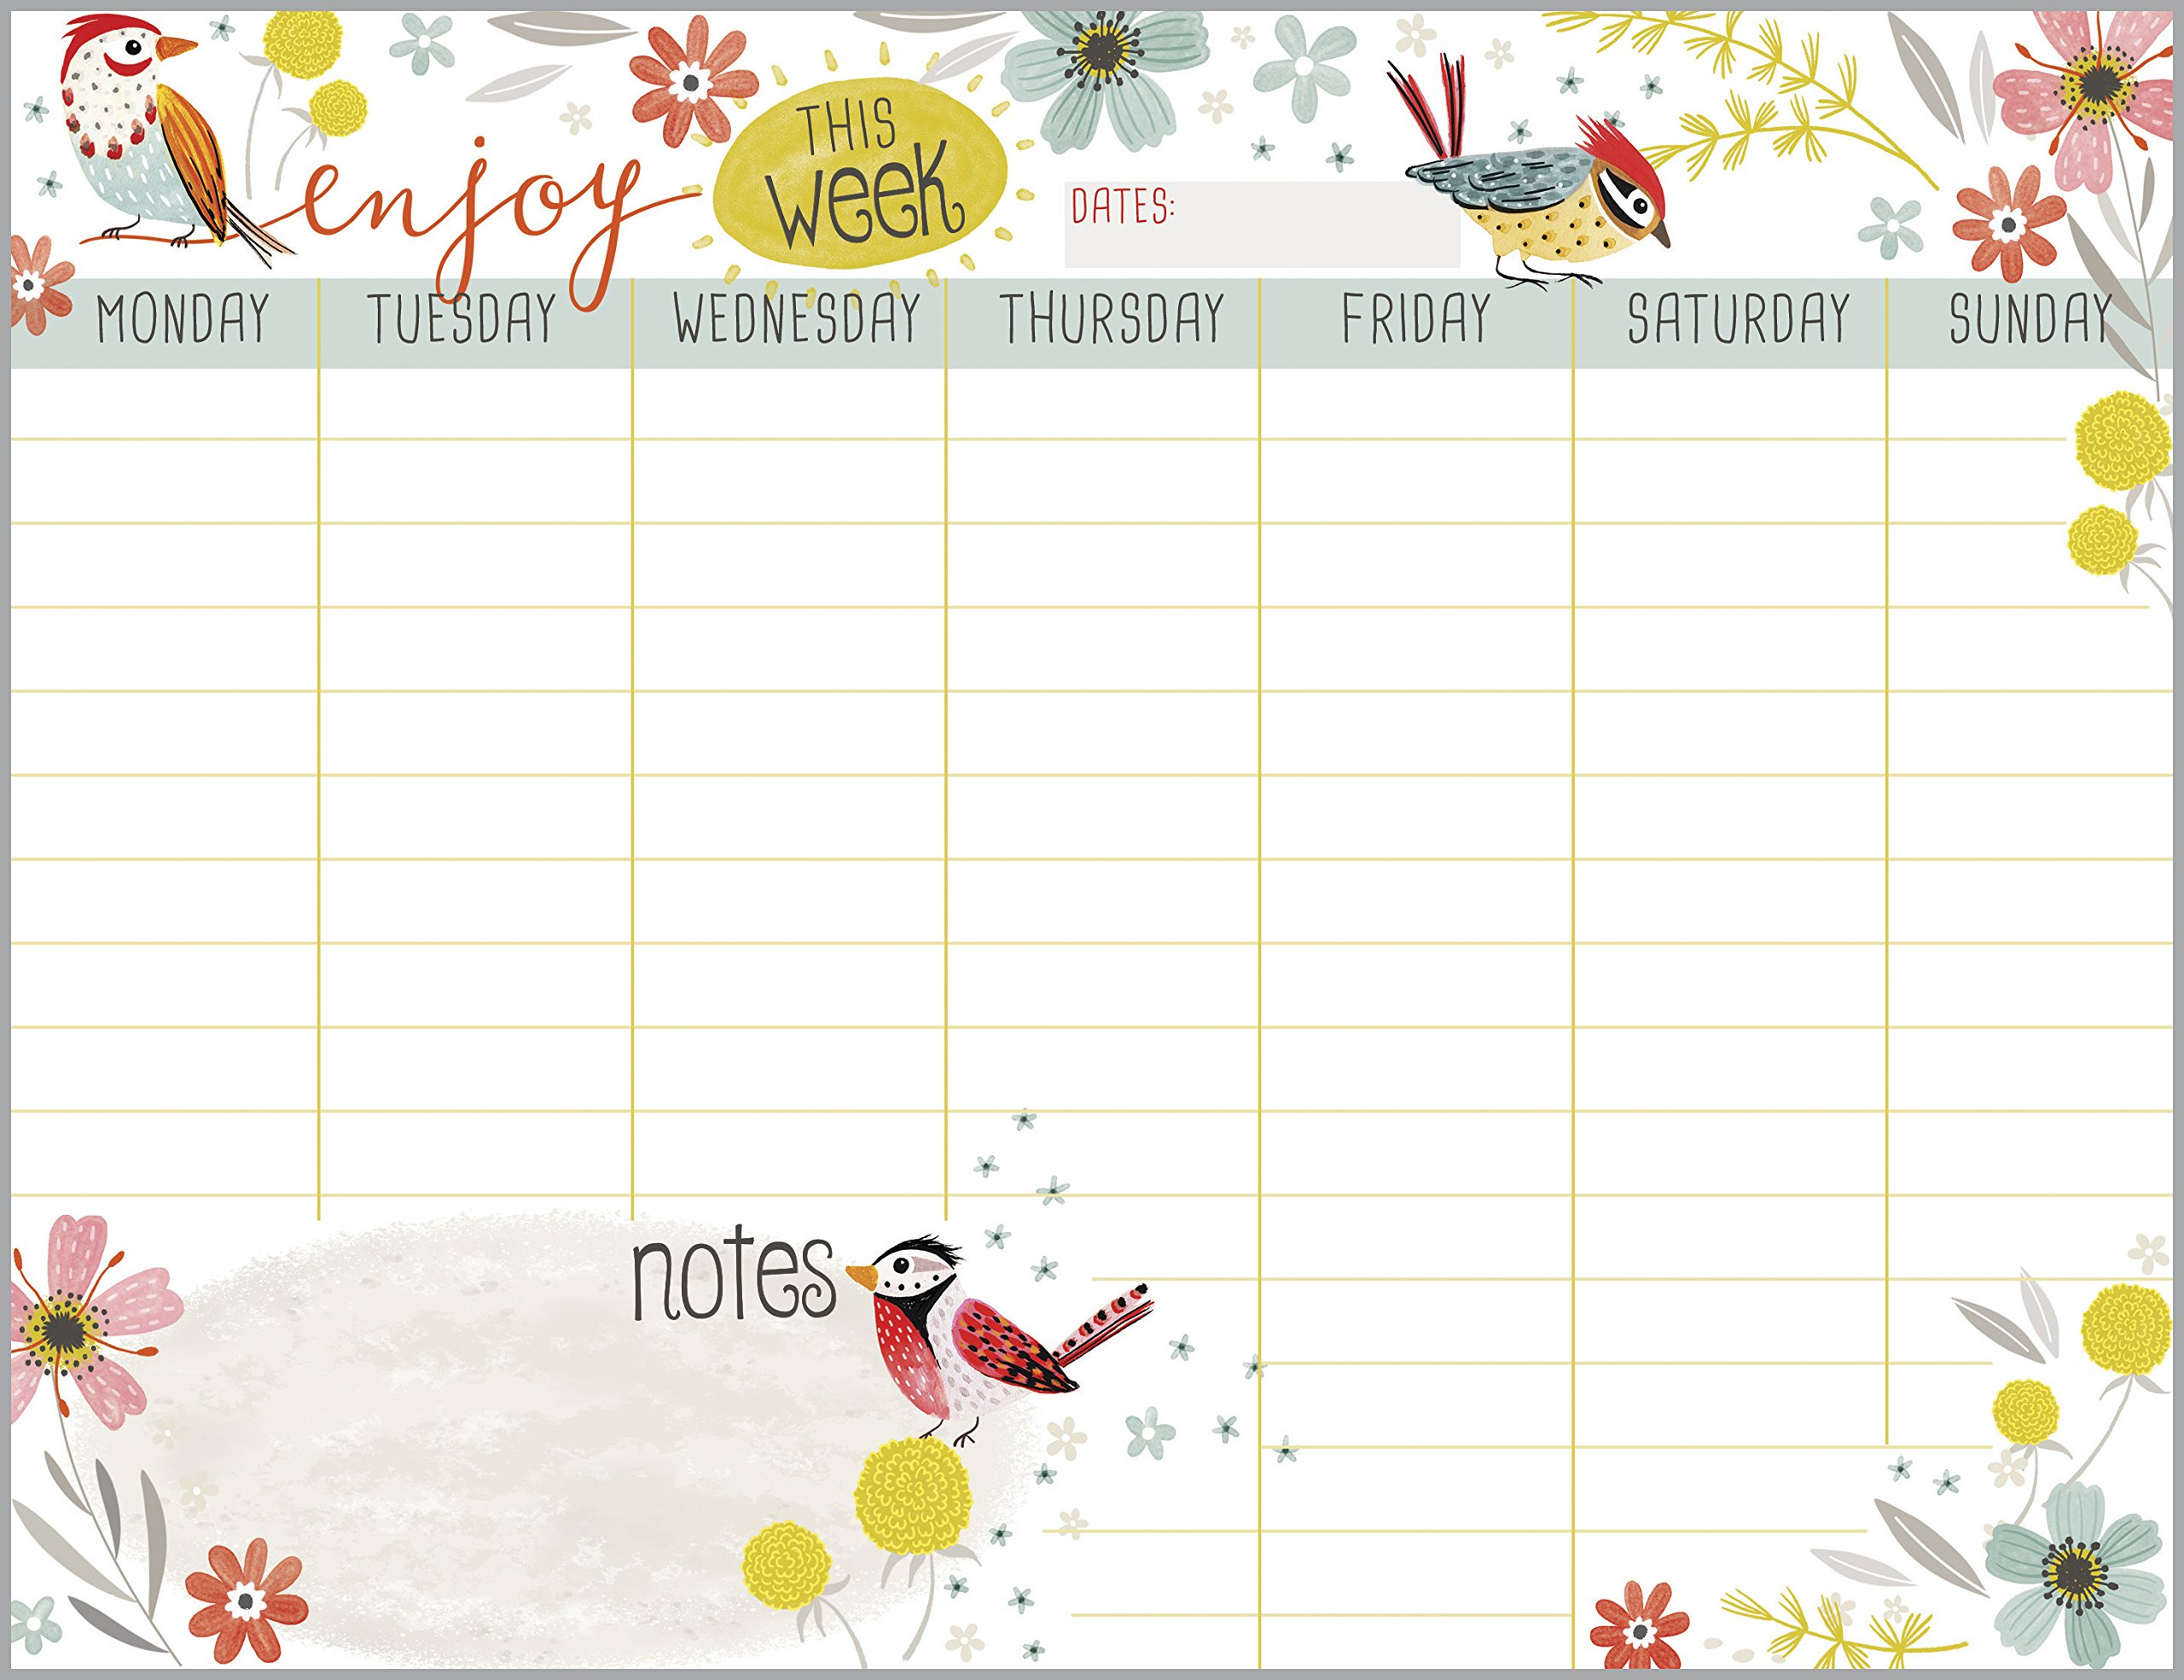 Bird and Flower Wreath Weekly Calendar Pad with Attachable Magnet